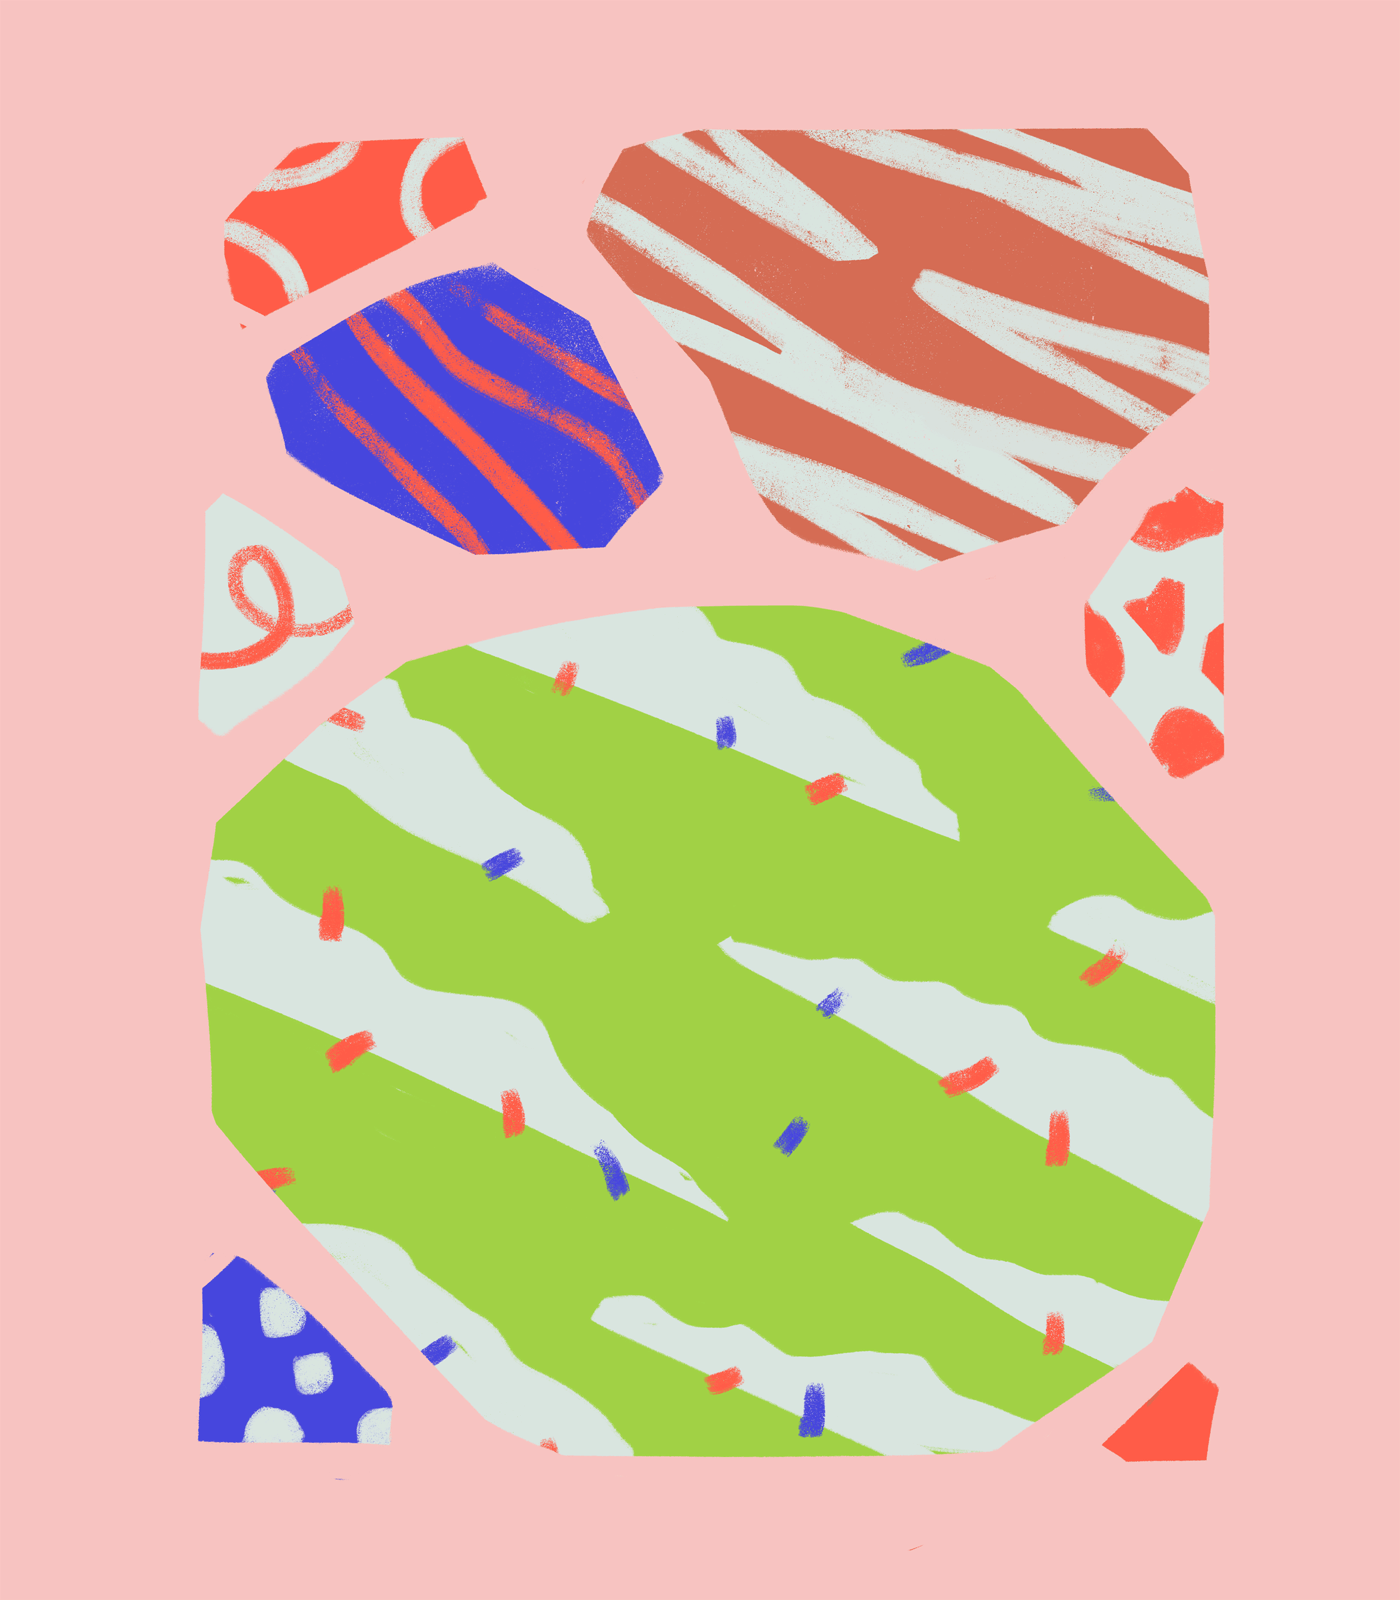 Shapes-6.png